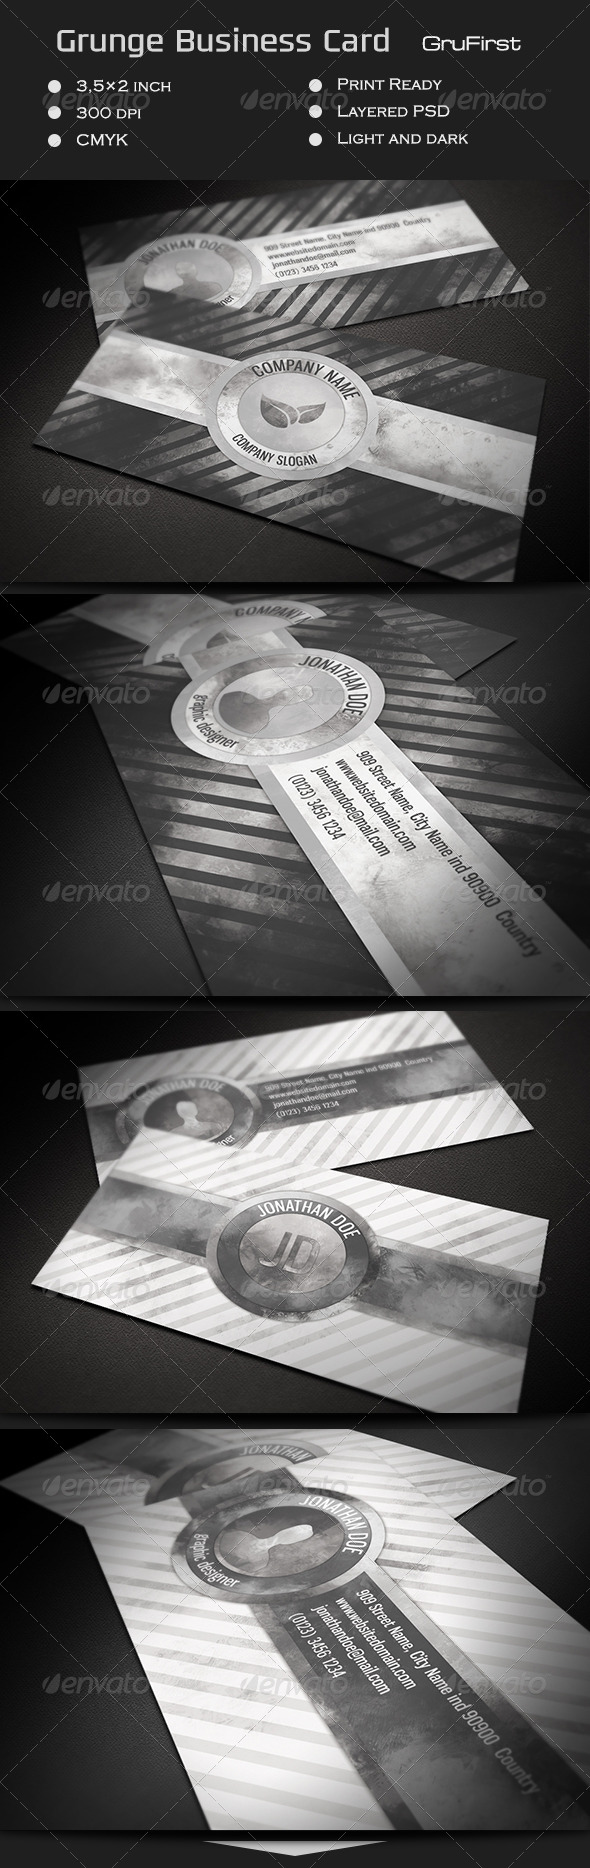 GraphicRiver Grunge Business Card GruFirst 7186815